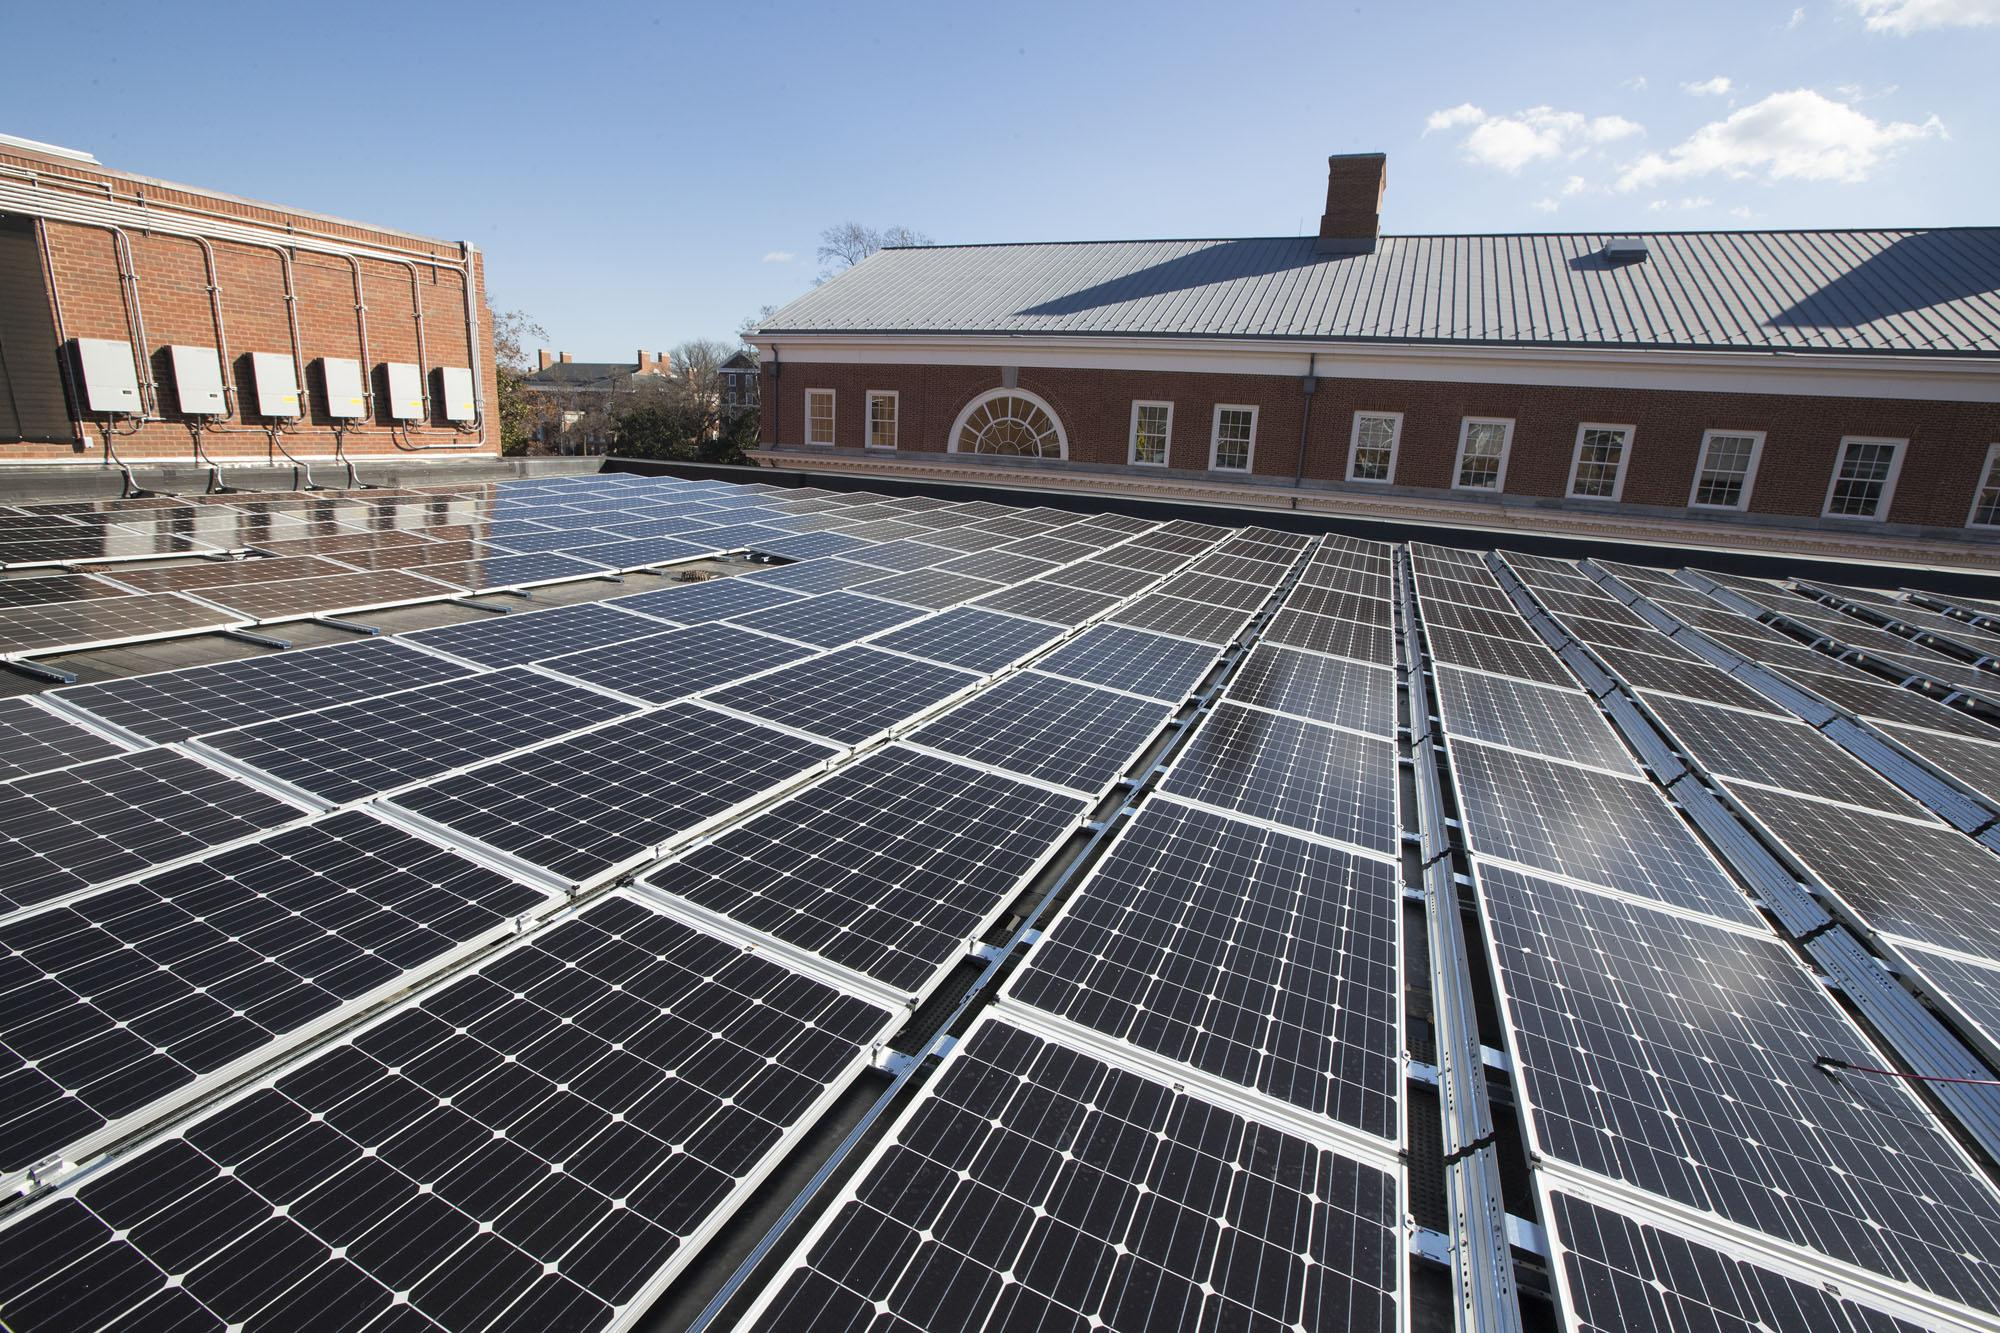 Nearly 1,600 solar panels on the roofs of Ruffner Hall and the UVA Bookstore will generate electricity for the power grid.